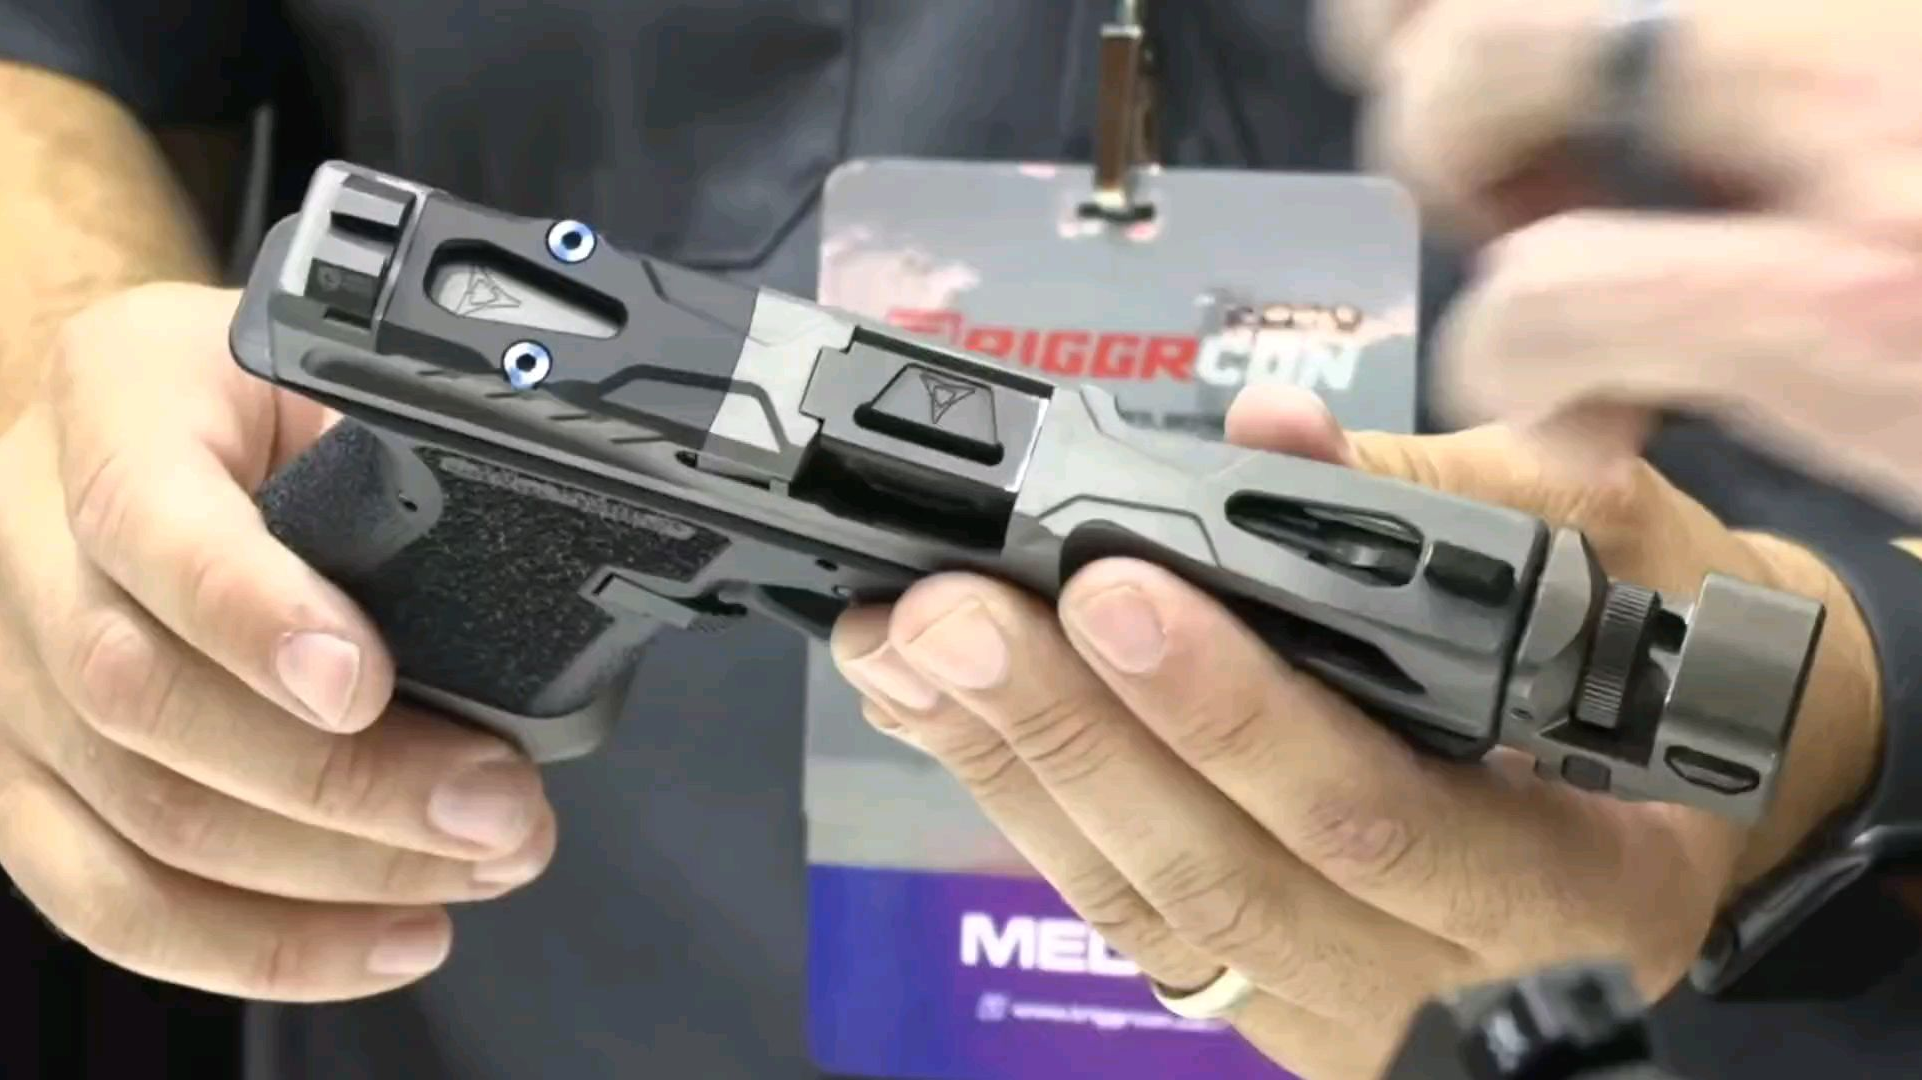 [Triggrcon 2019] Awesome Glock Slides and mag exte